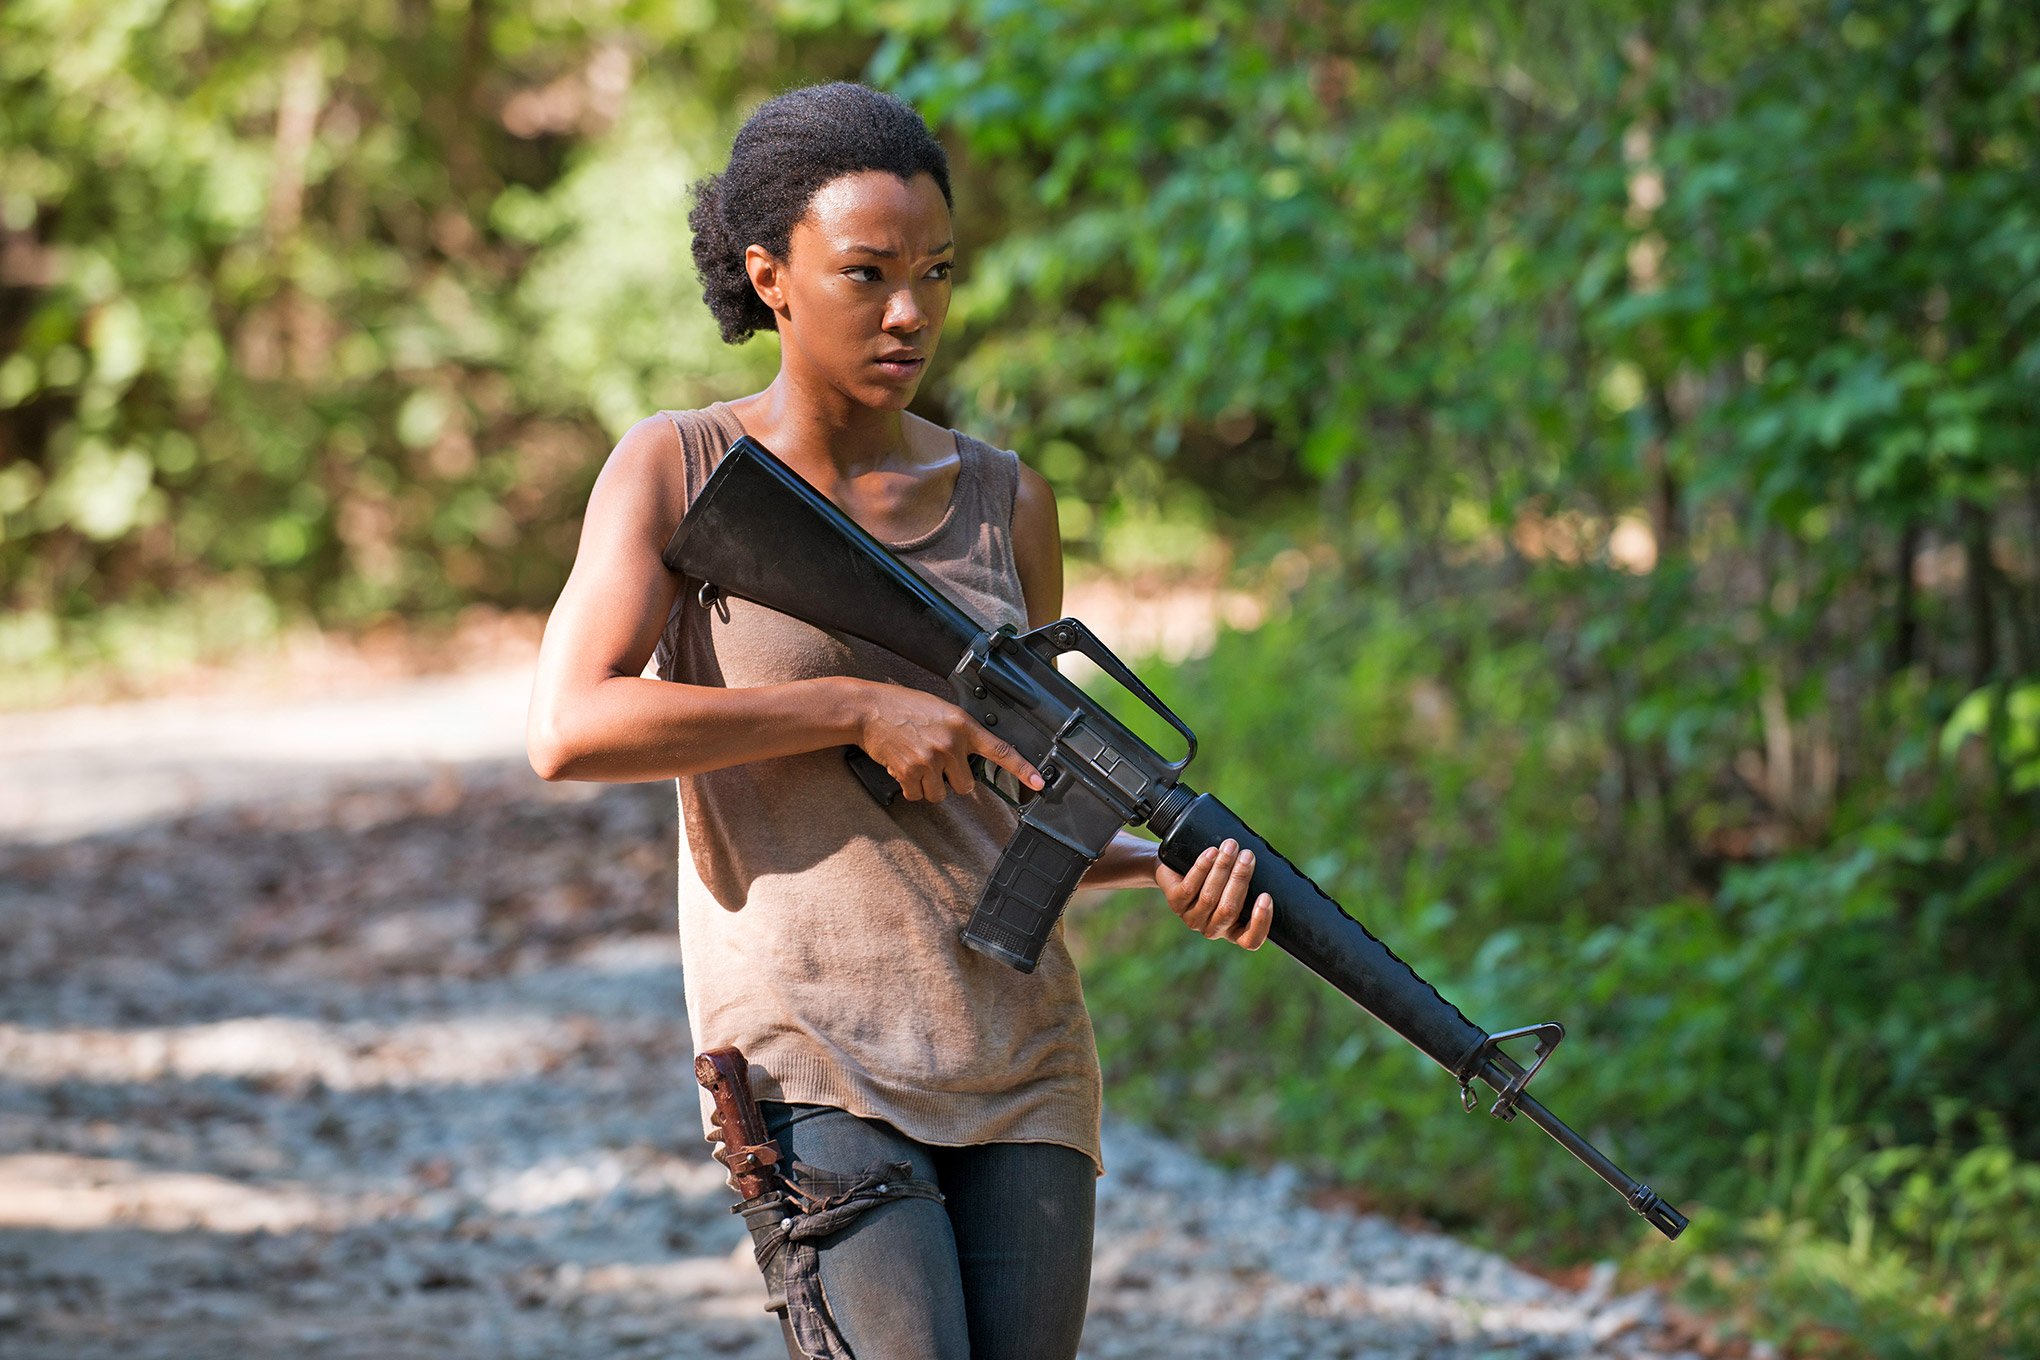 Sonequa Martin-Green in 'The Walking Dead'